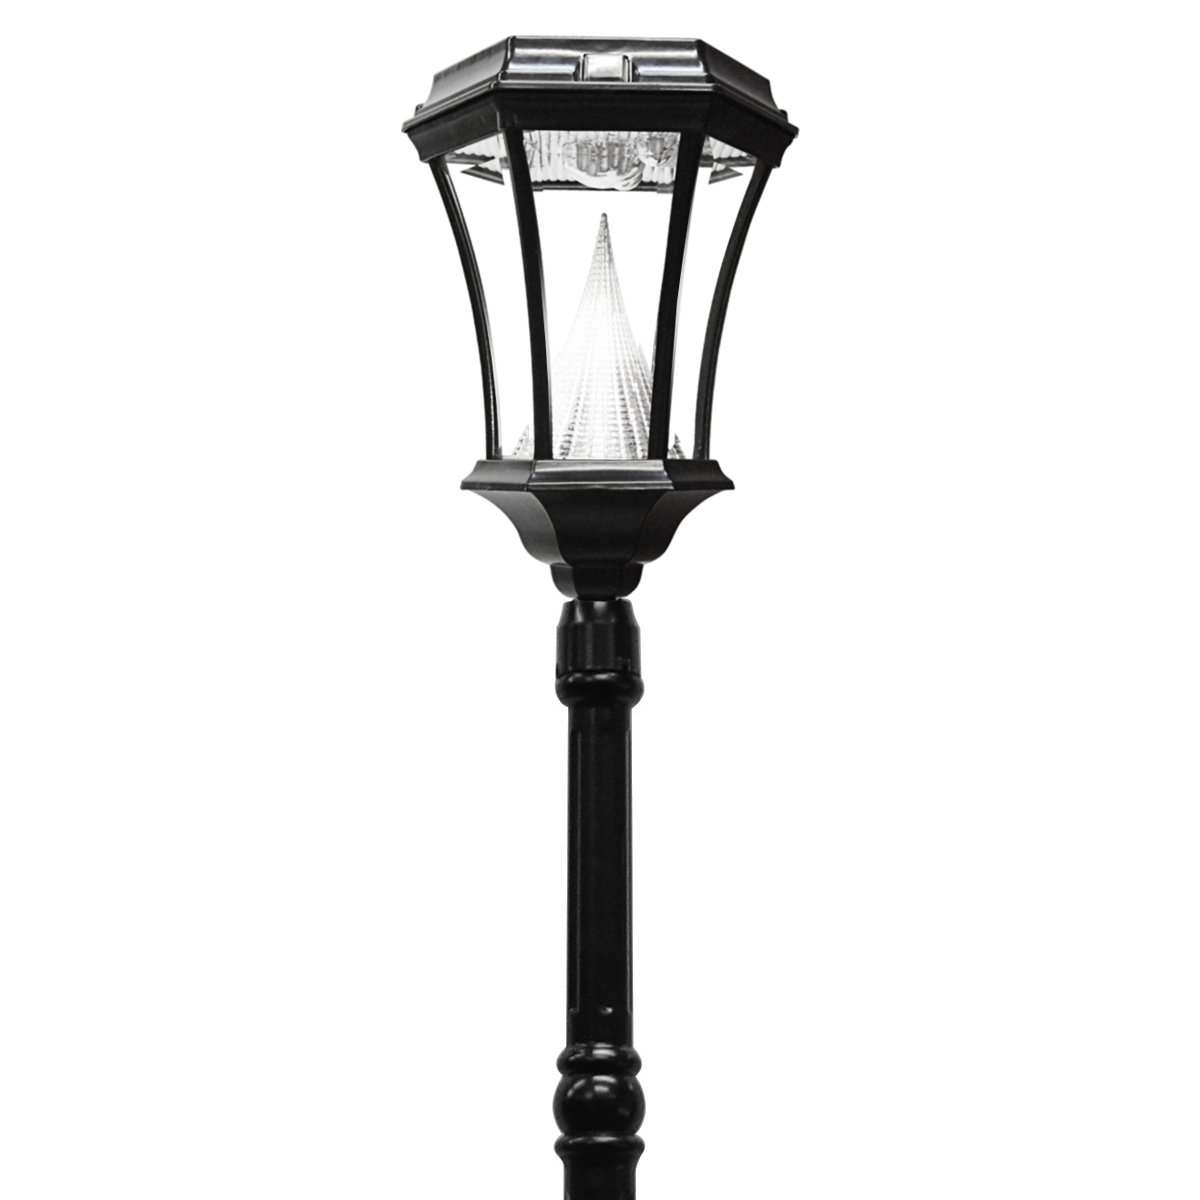 Amazon gama sonic victorian solar lamp post and single lamp amazon gama sonic victorian solar lamp post and single lamp led light fixture 93 inch height black finish gs 94s b outdoor post light accessories aloadofball Image collections